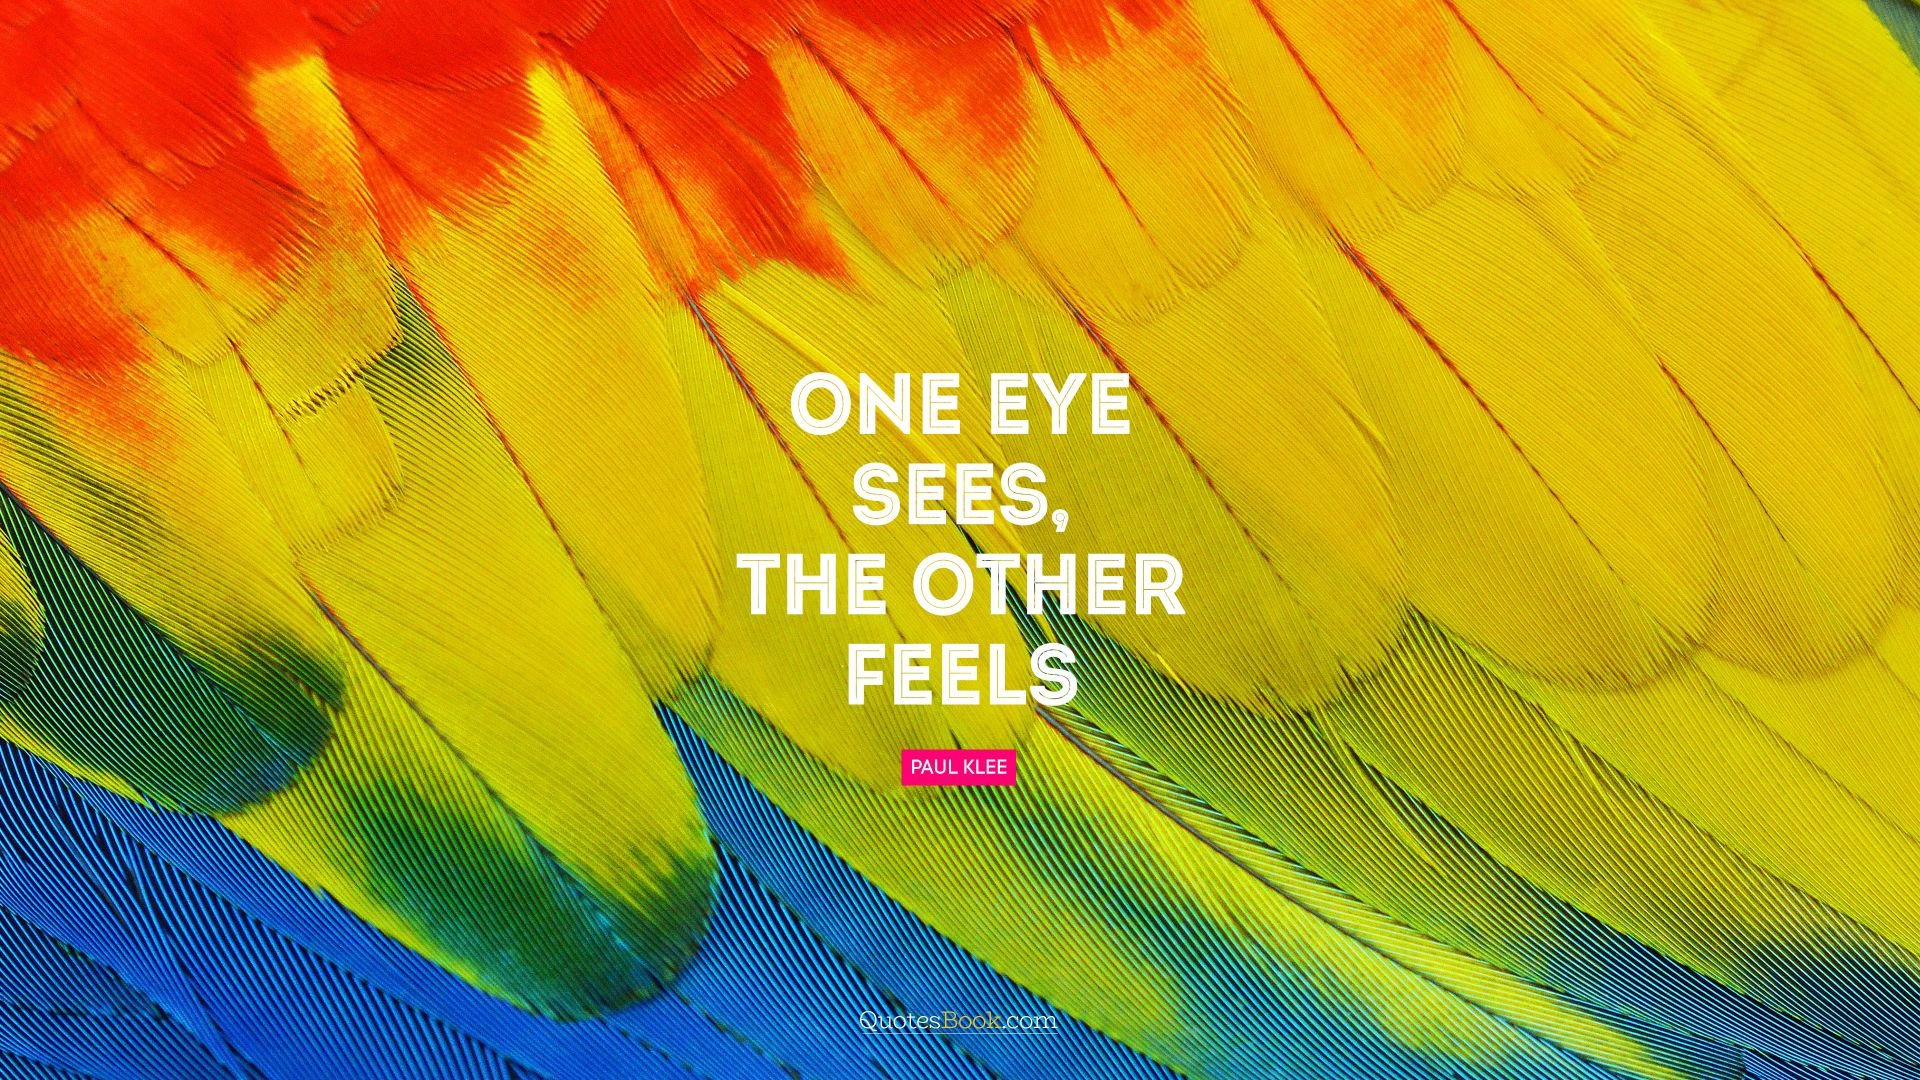 One eye sees, the other feels. - Quote by Paul Klee